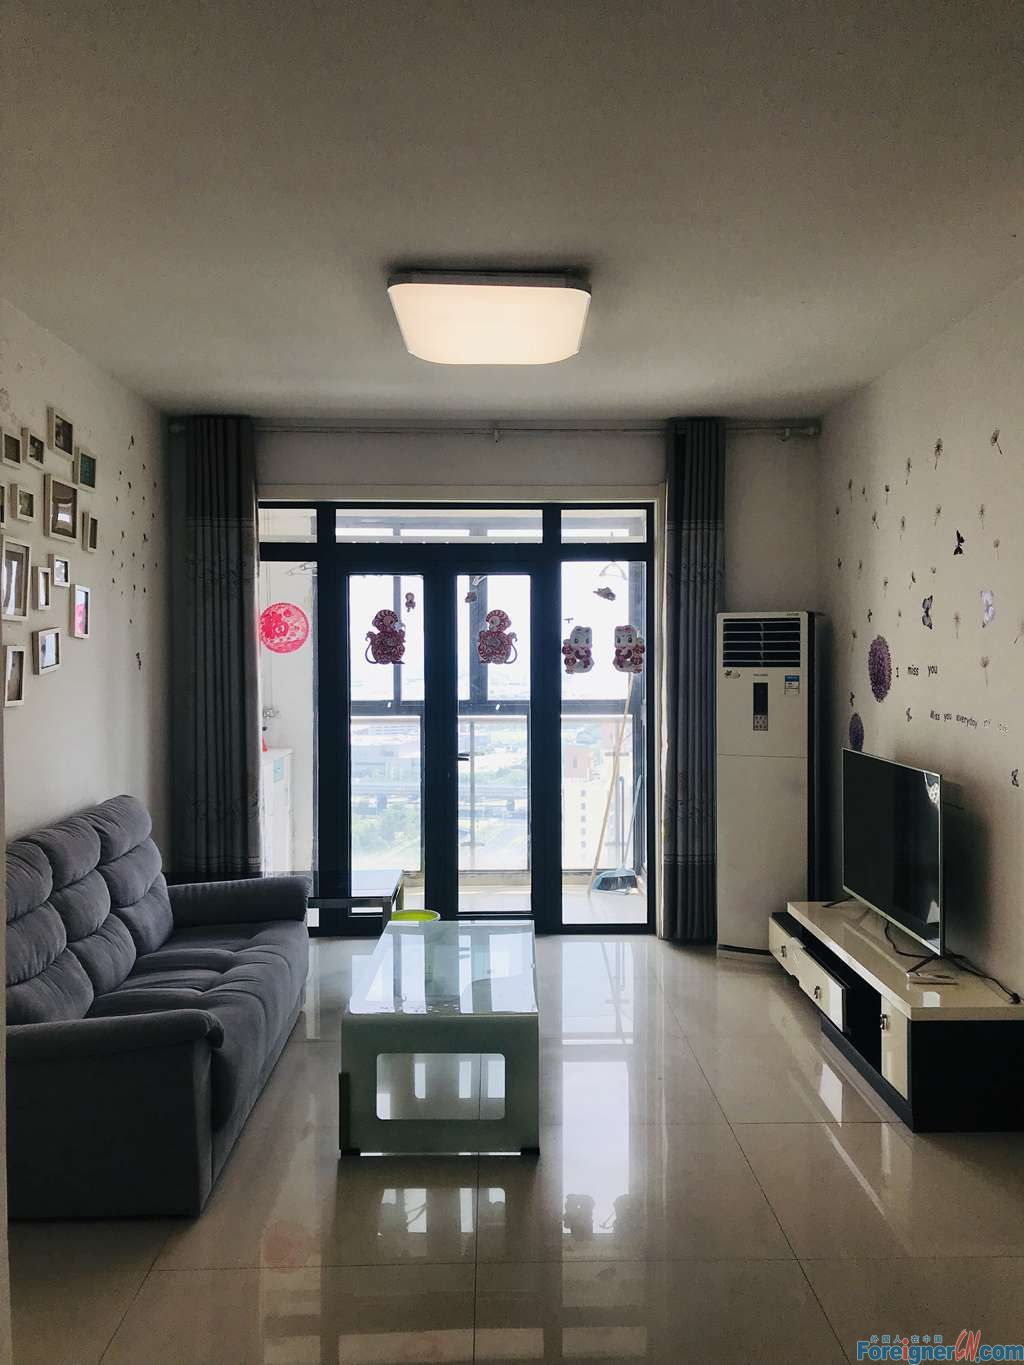 Amazing!Xinghu Apartment 1 bedroom-fully furnished -luxury decoration -convenient life- near Shopping mall and commercial street.